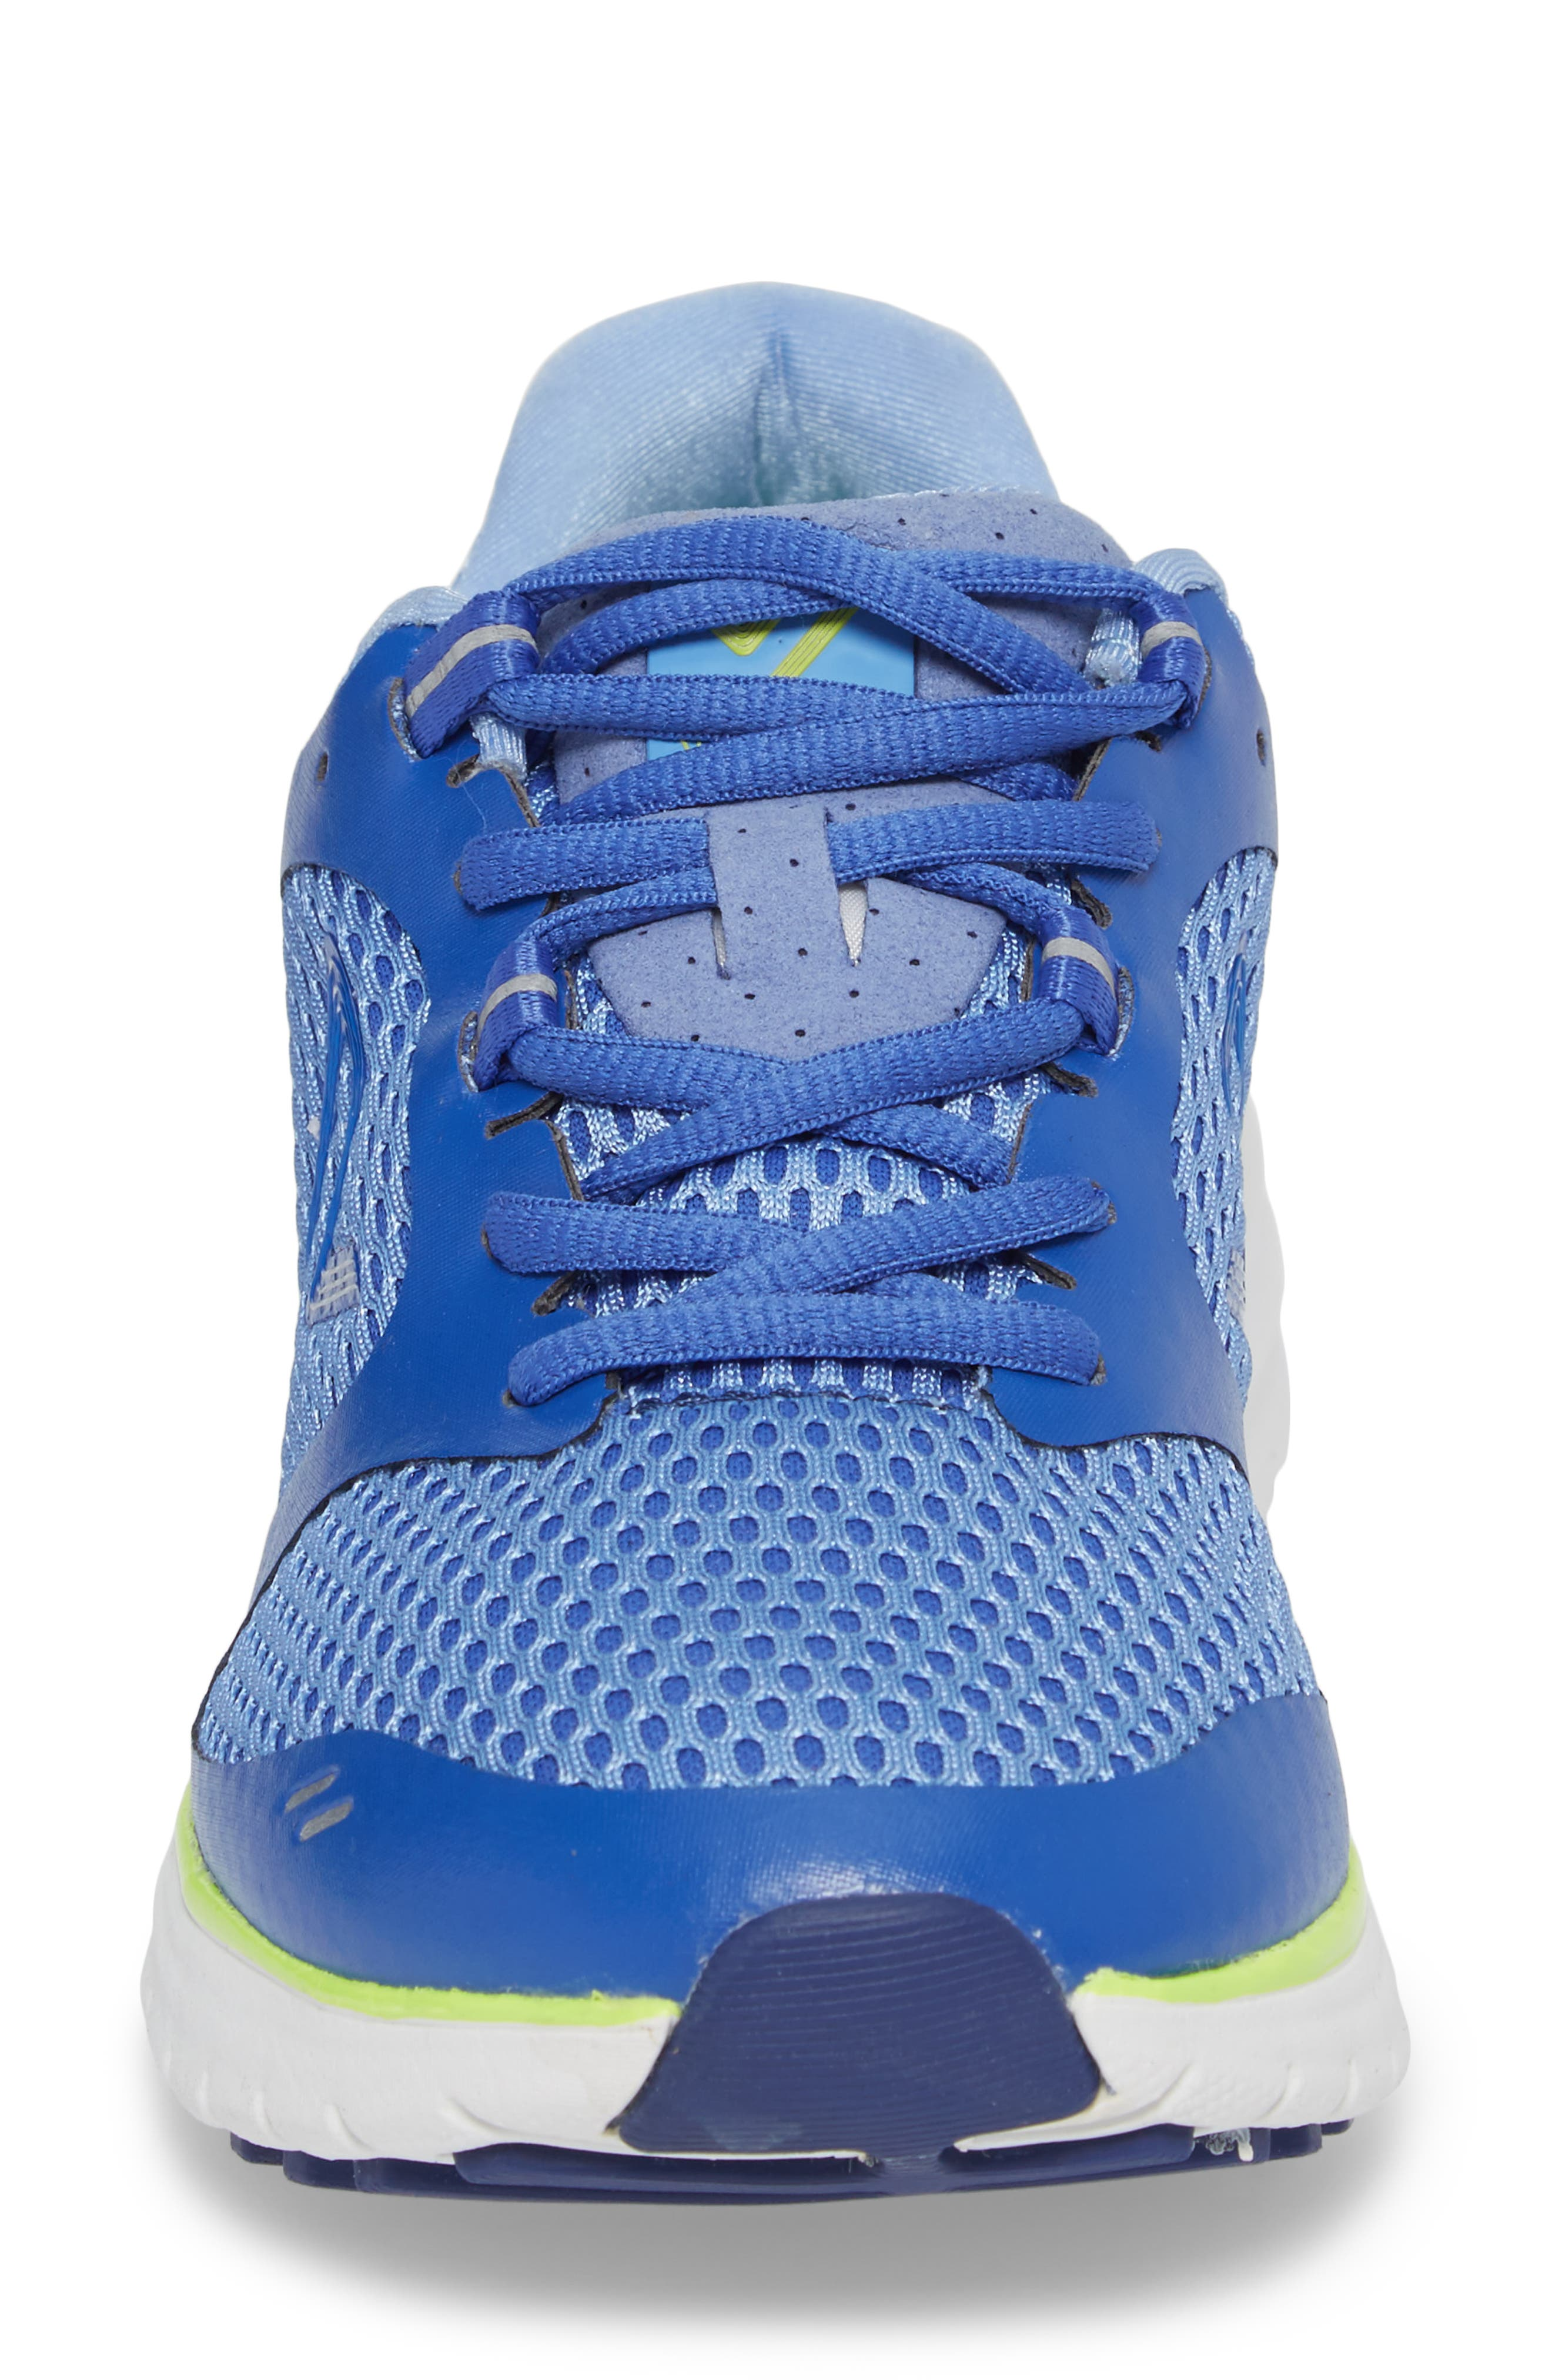 Elation Sneaker,                             Alternate thumbnail 4, color,                             BLUE/ YELLOW